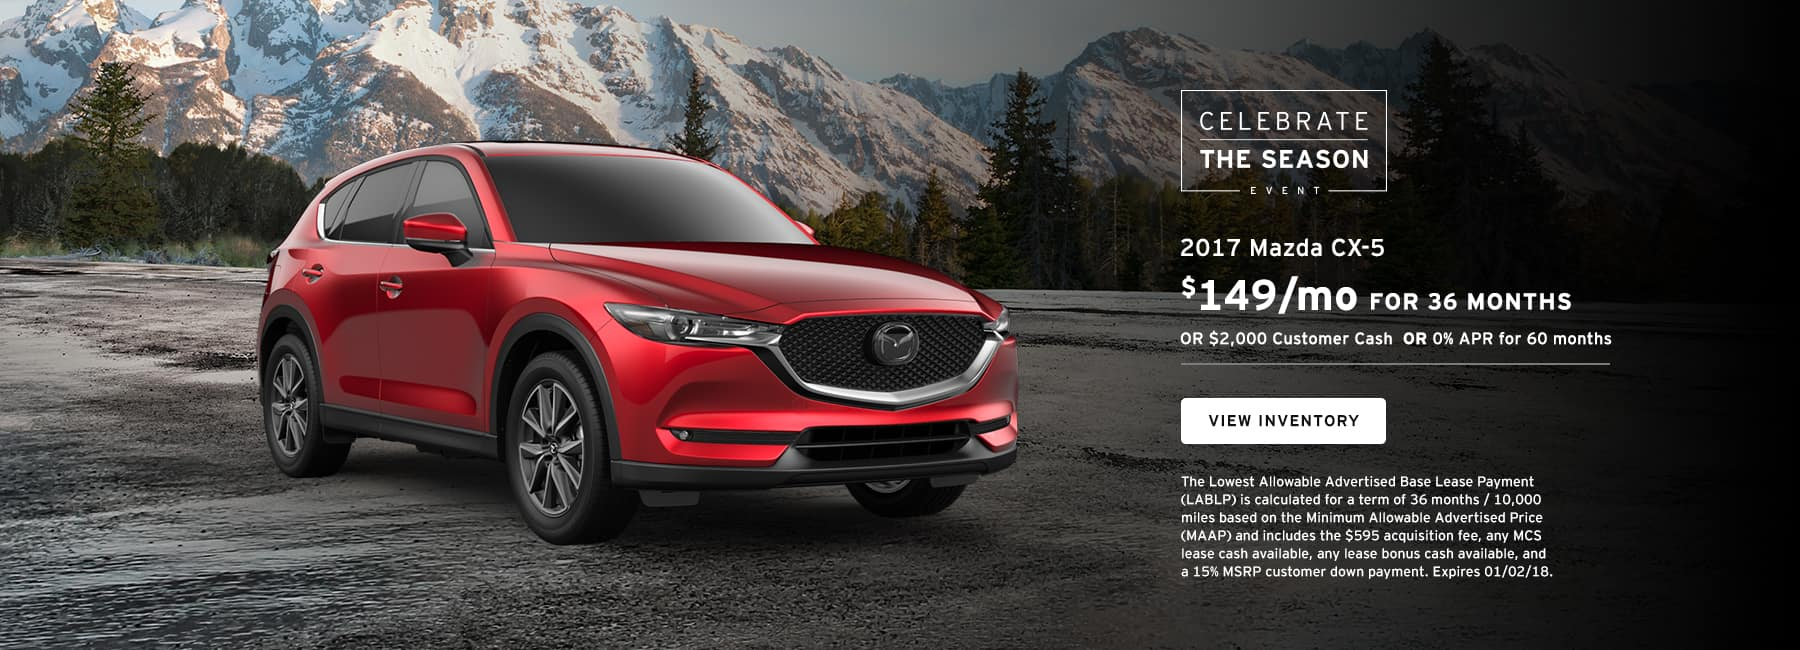 CX5 December Offer Biggers Mazda